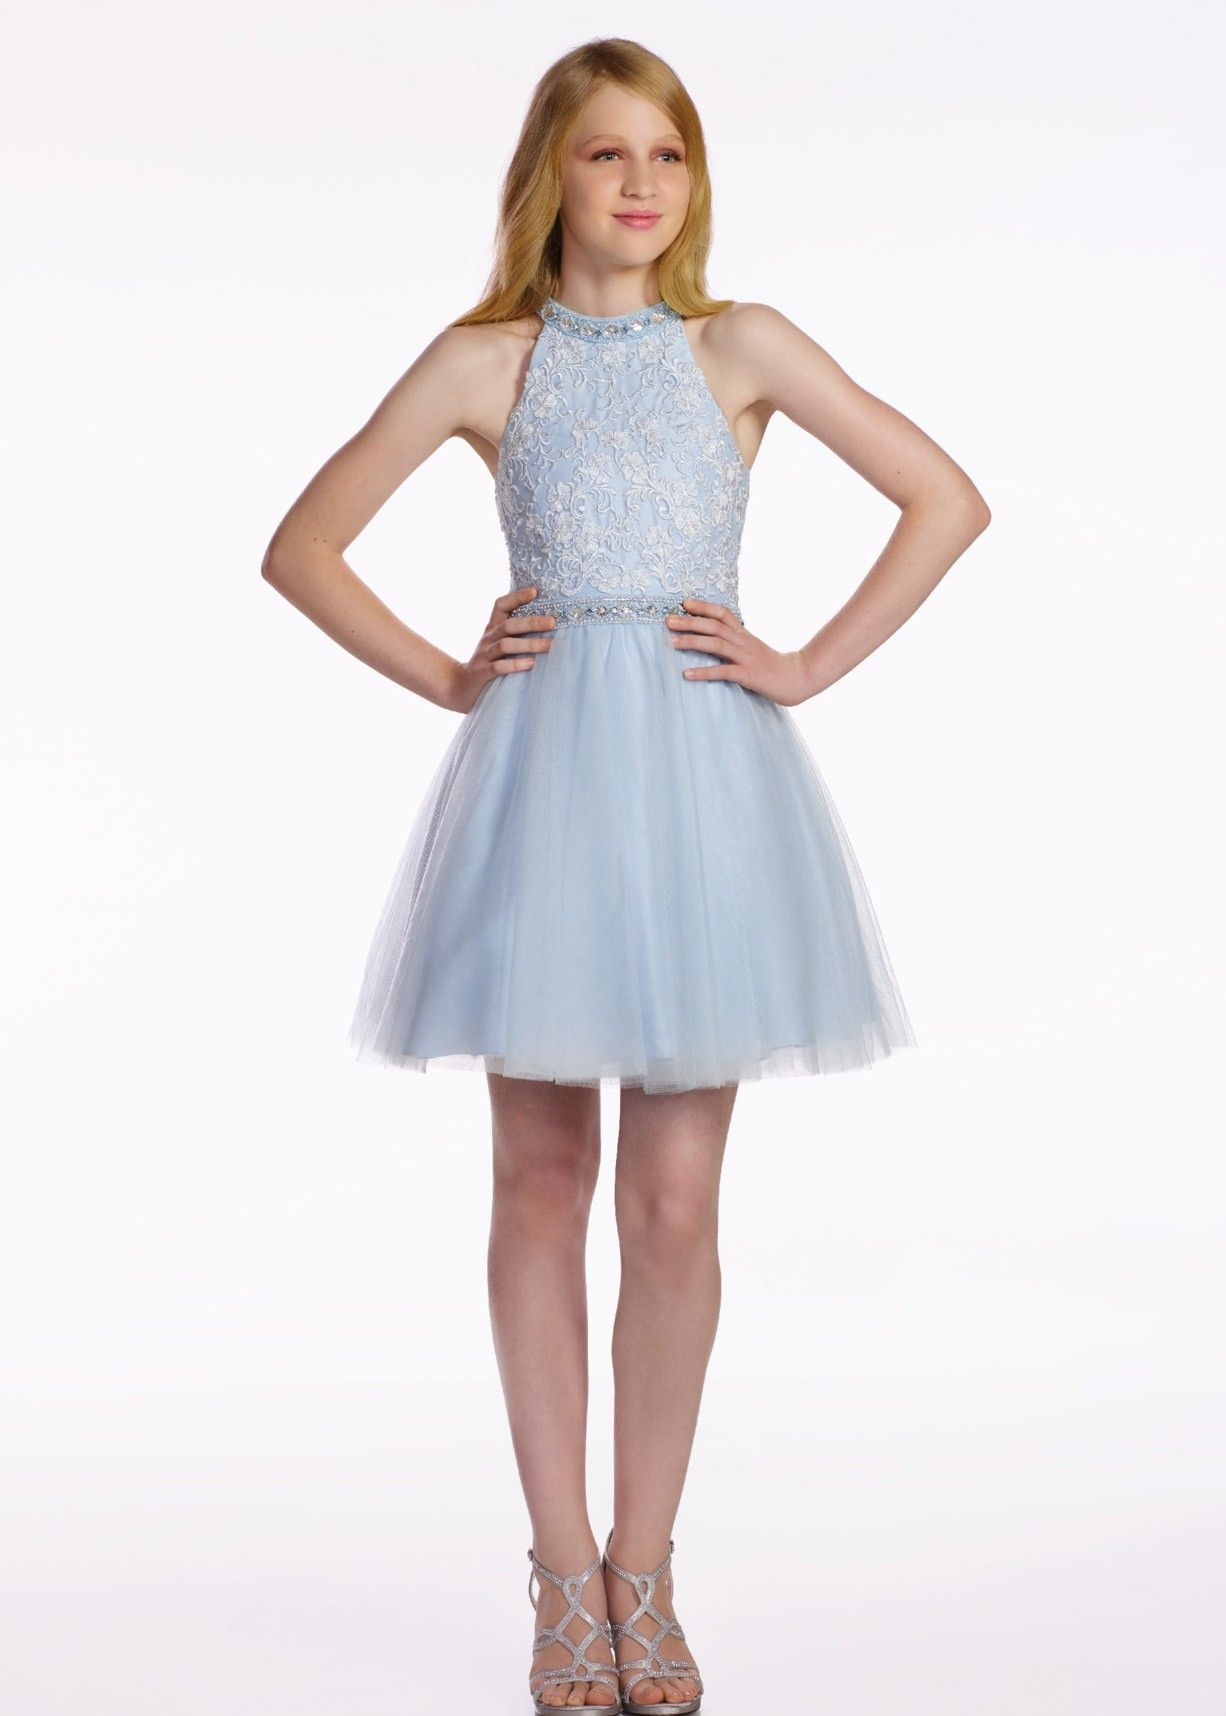 Lexie by Mon Cheri TW11662 Tween High Neck Beaded Lace Dress